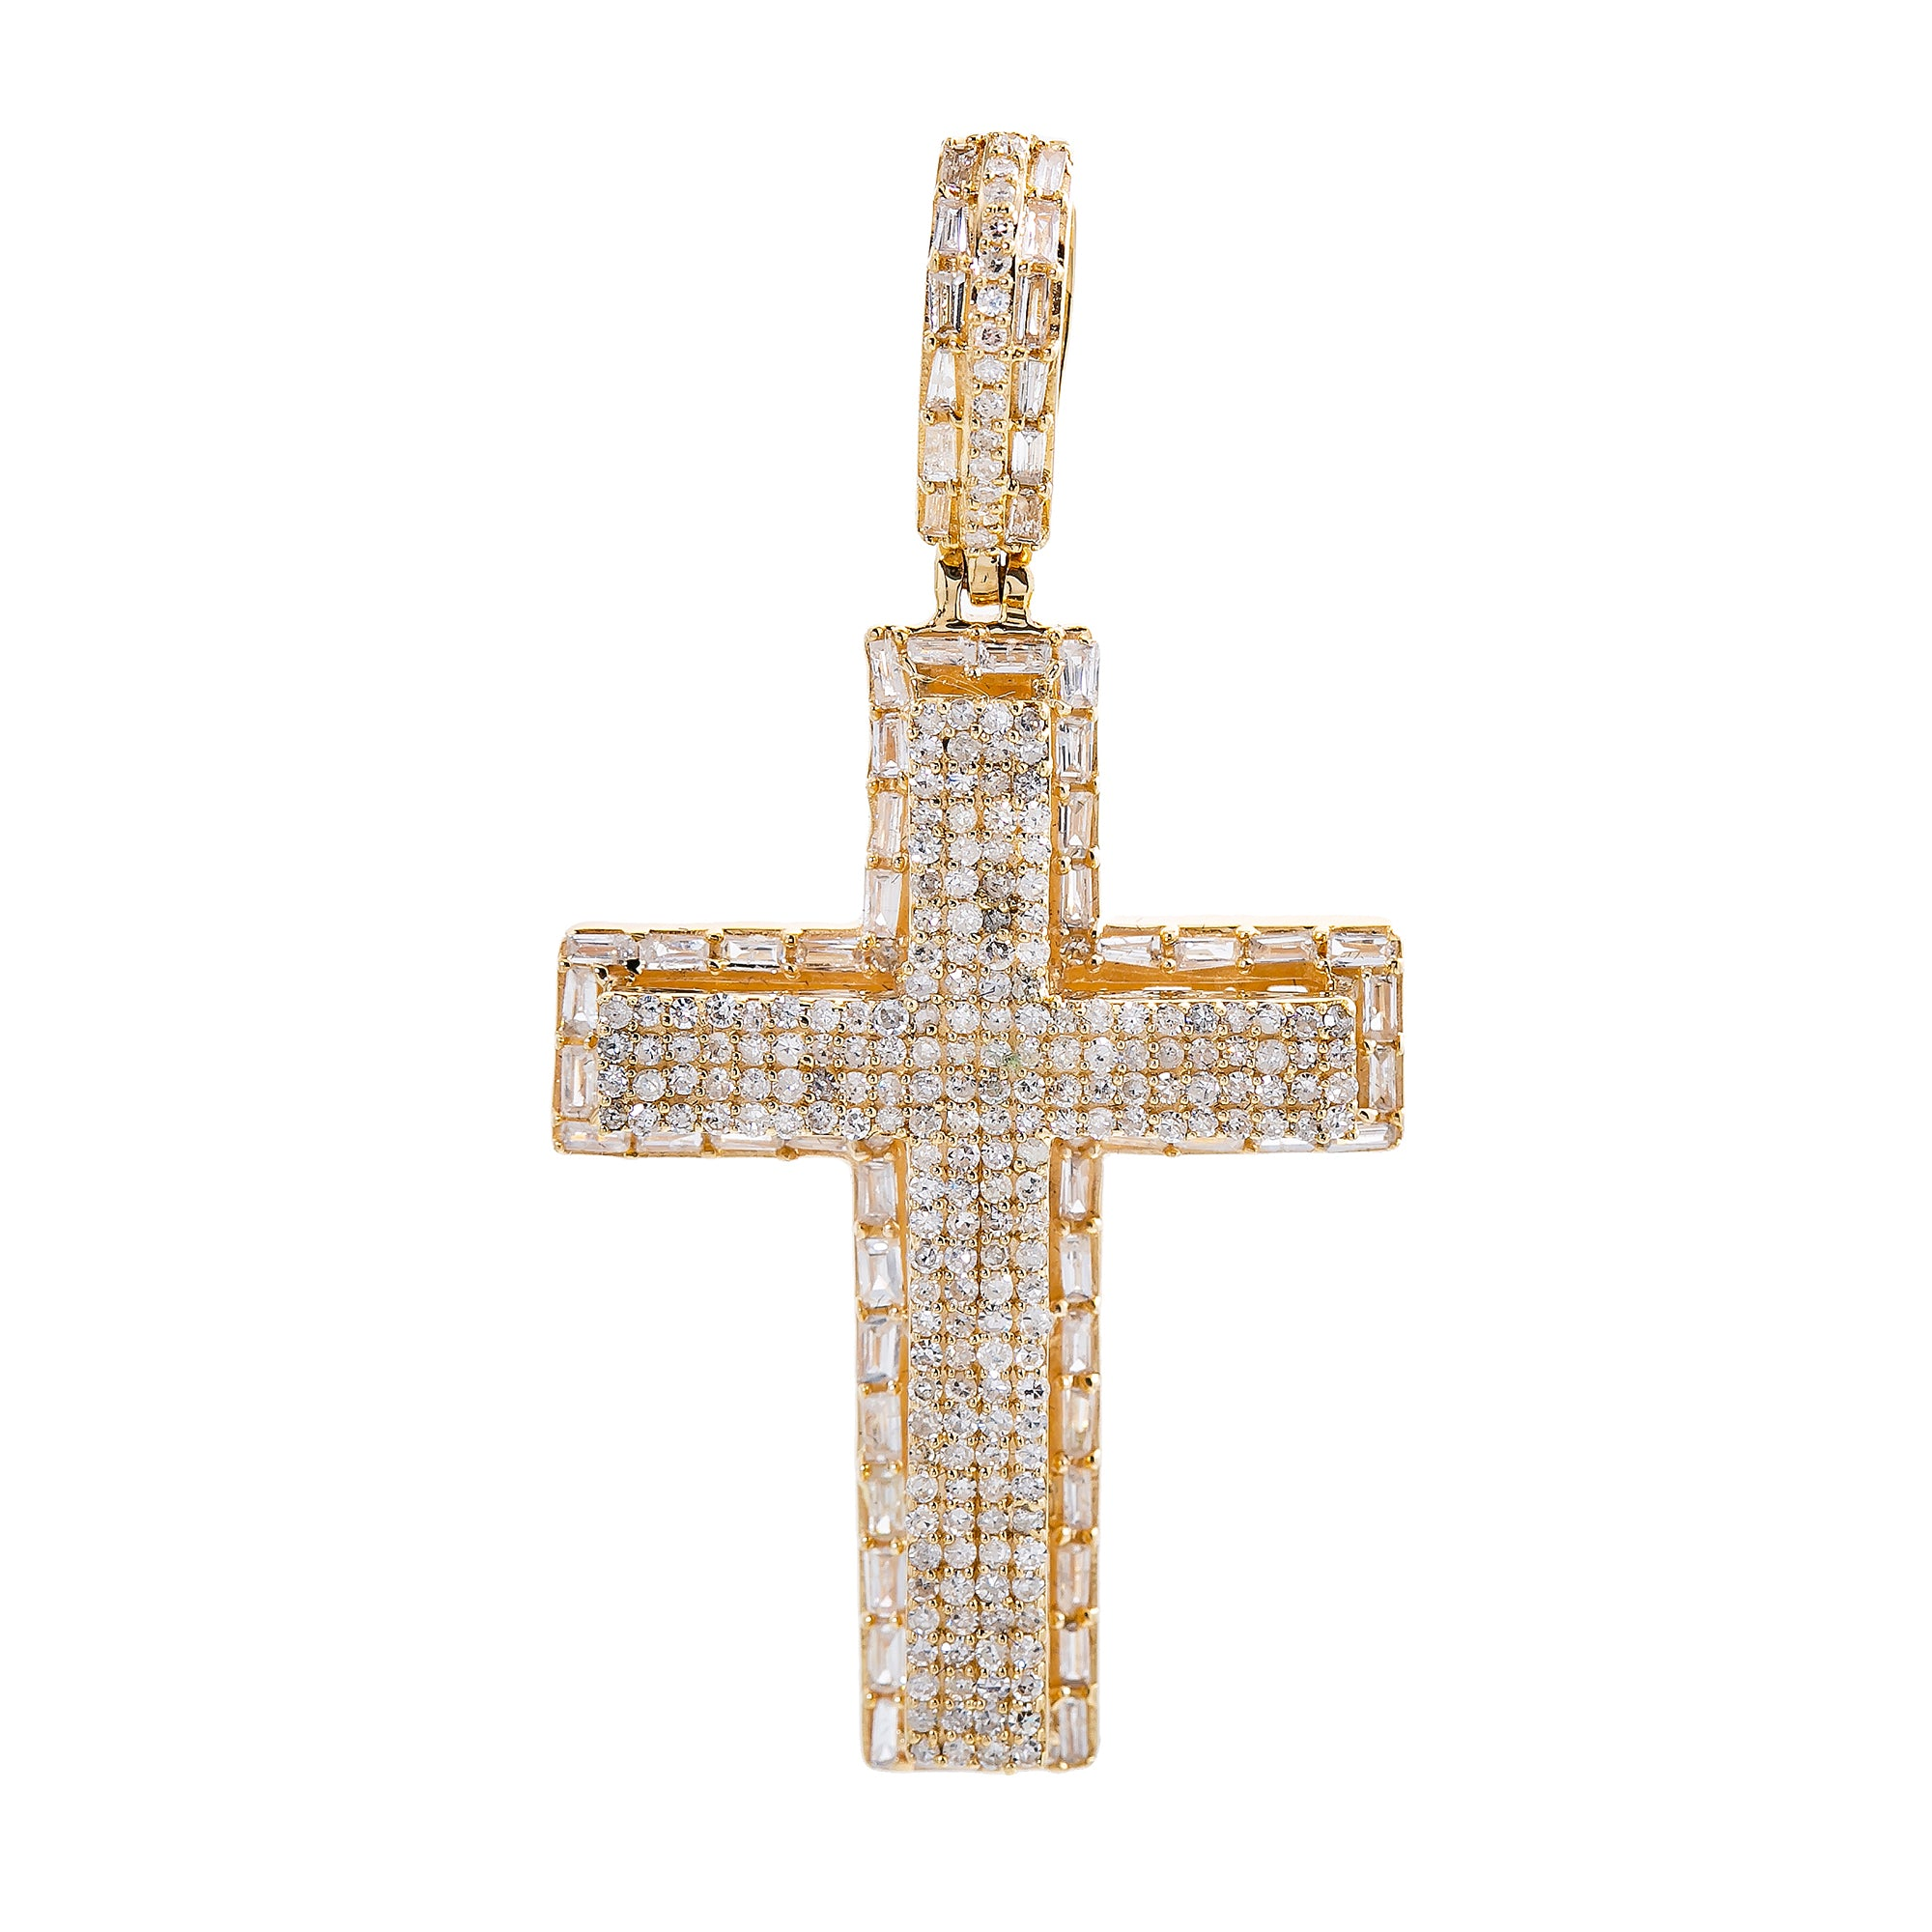 Unisex 14K Yellow Gold Cross Pendant with 1.11 CT Diamonds